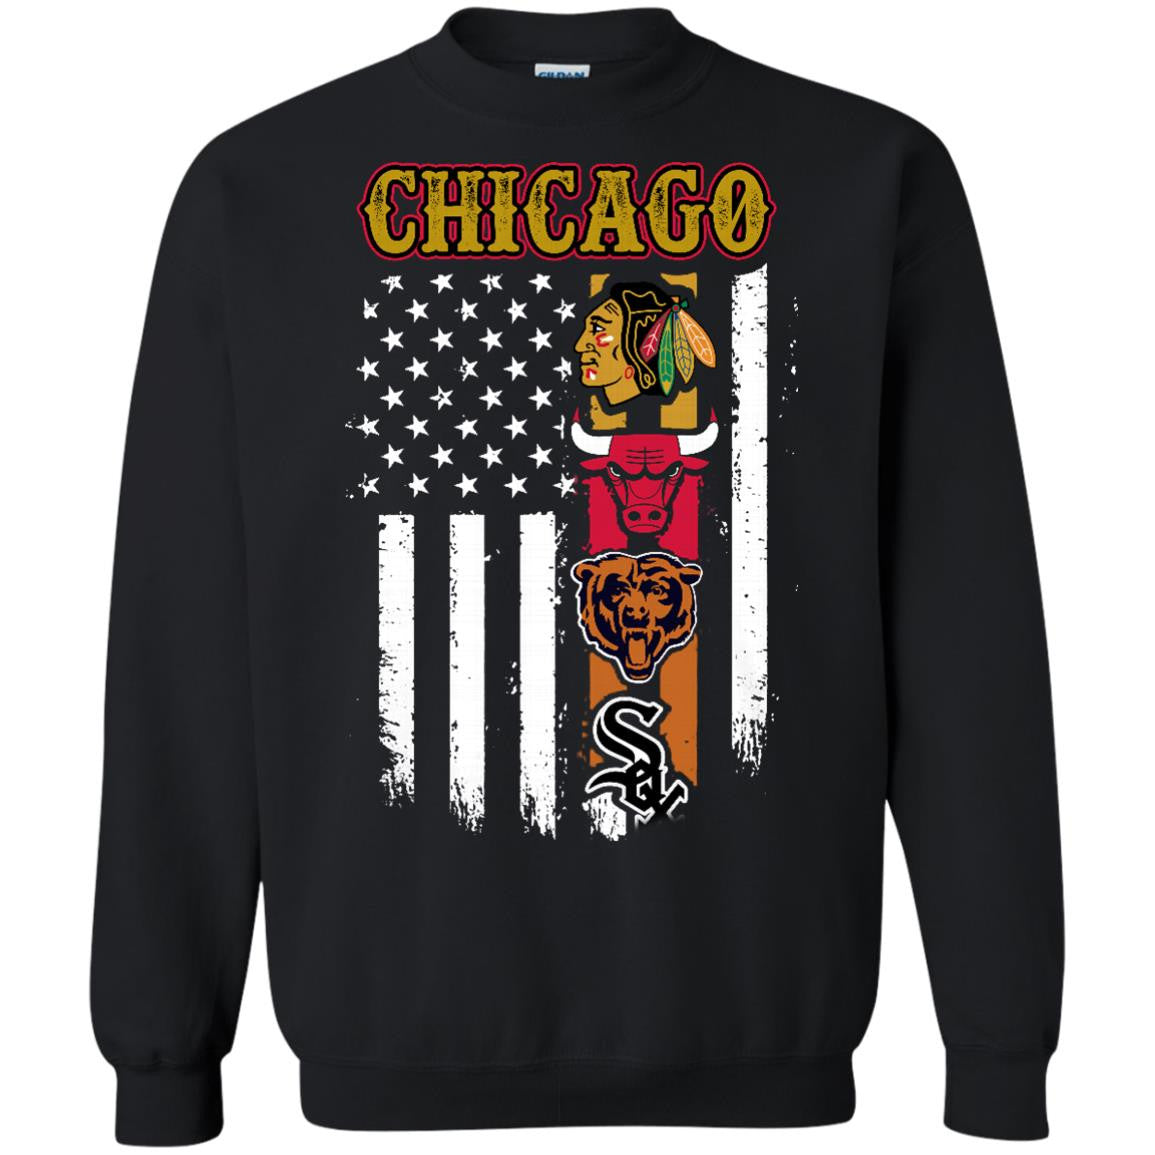 Chicago Shirts Chicago Sports Teams T Shirts Hoodies